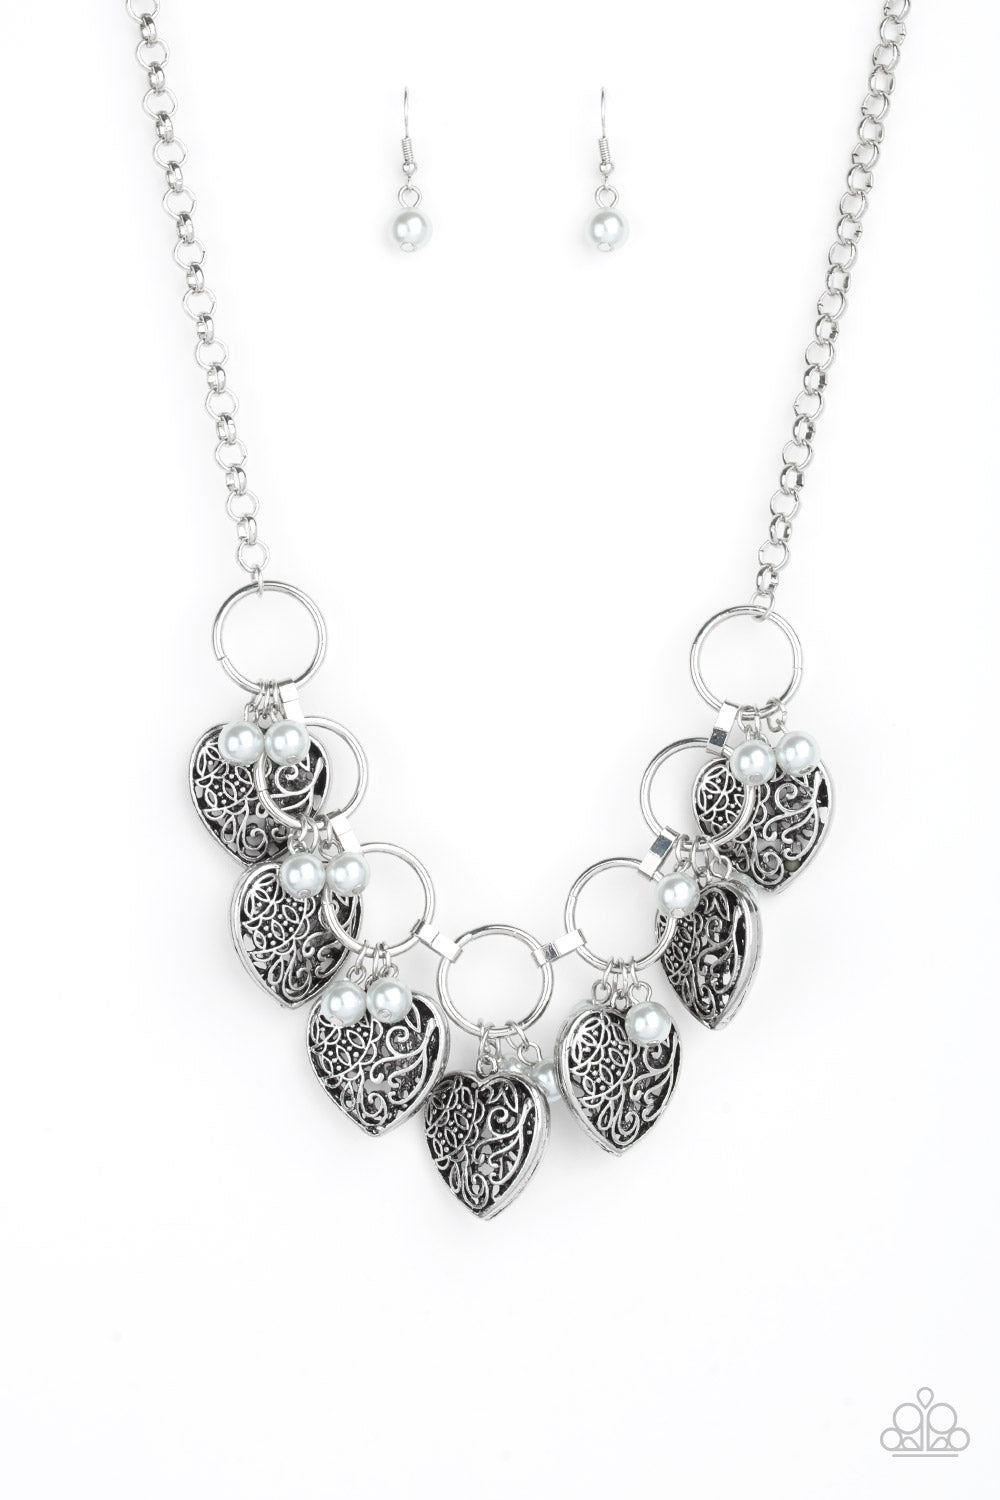 Paparazzi Accessories - Very Valentine - Silver Necklace Set - JMJ Jewelry Collection